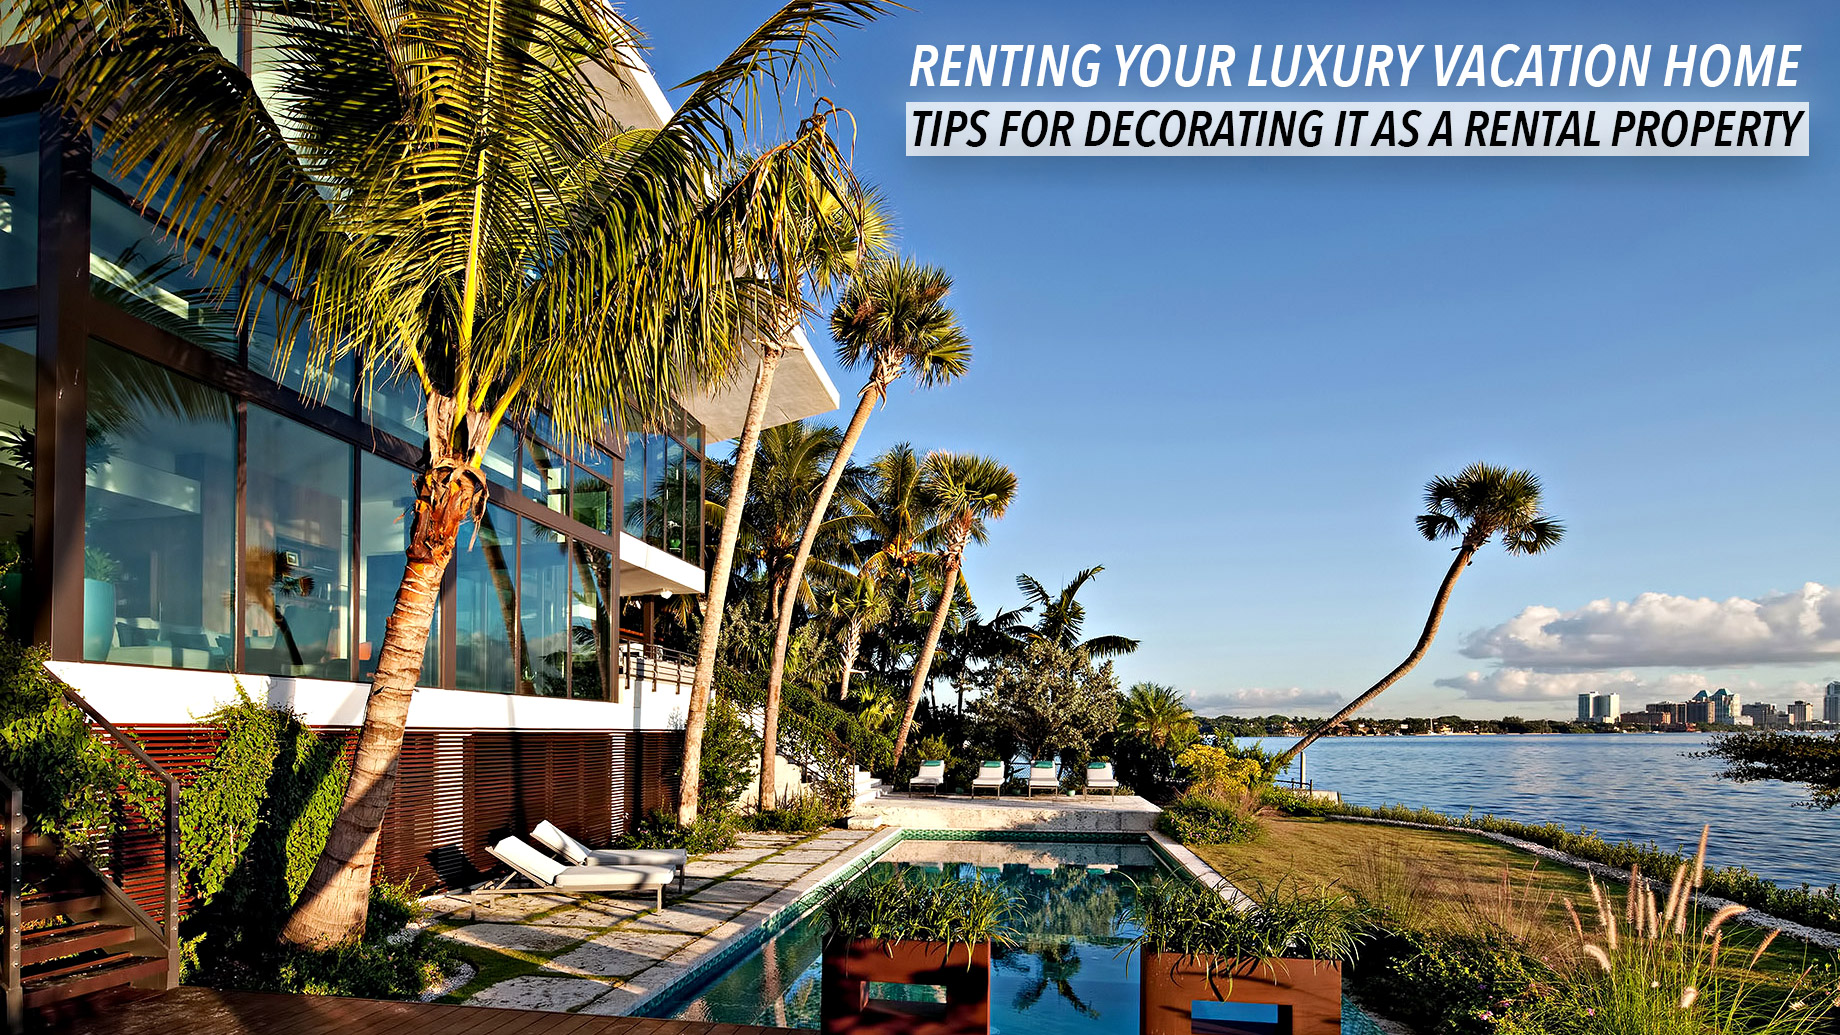 Renting Your Luxury Vacation Home - Tips for Decorating it as a Rental Property